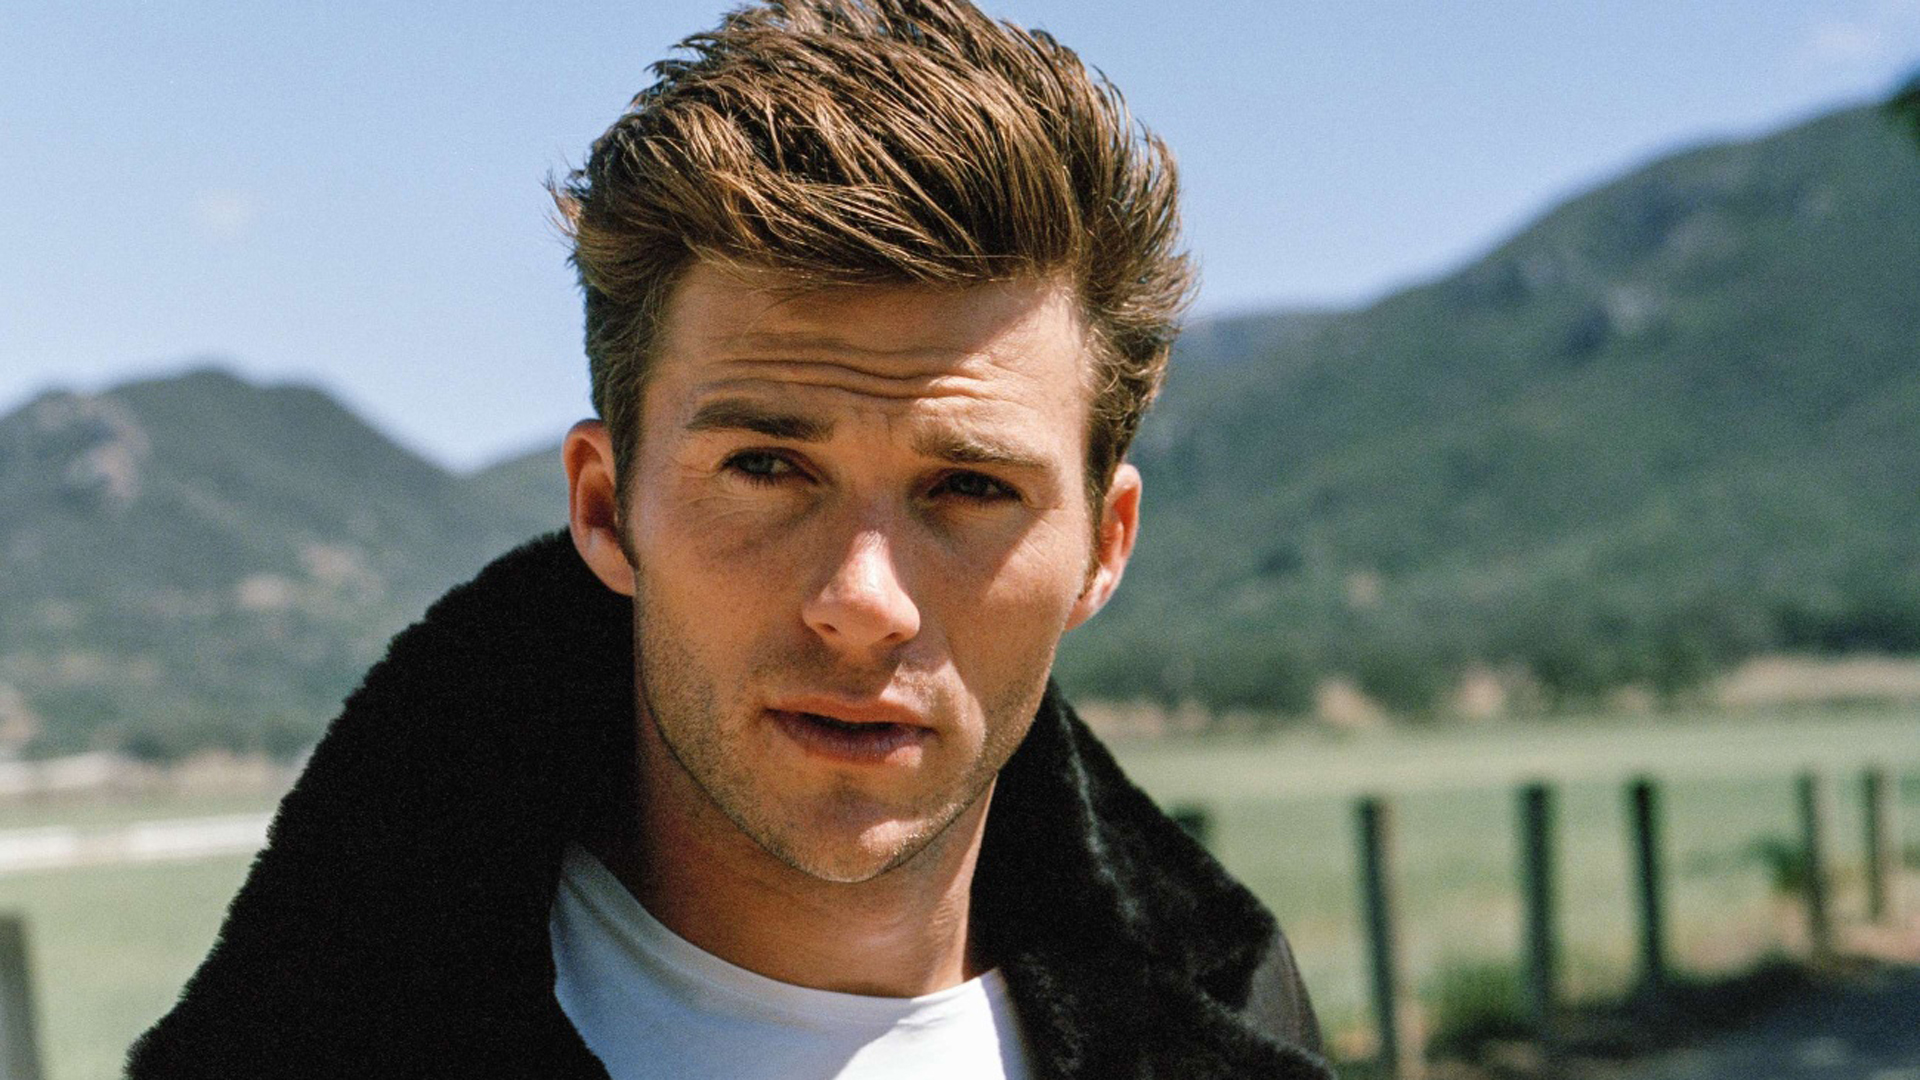 Sexiest Scott Eastwood photos, sexiest pictures of Scott Eastwood, Clint Eastwood's Son, Hot Scott Eastwood photos